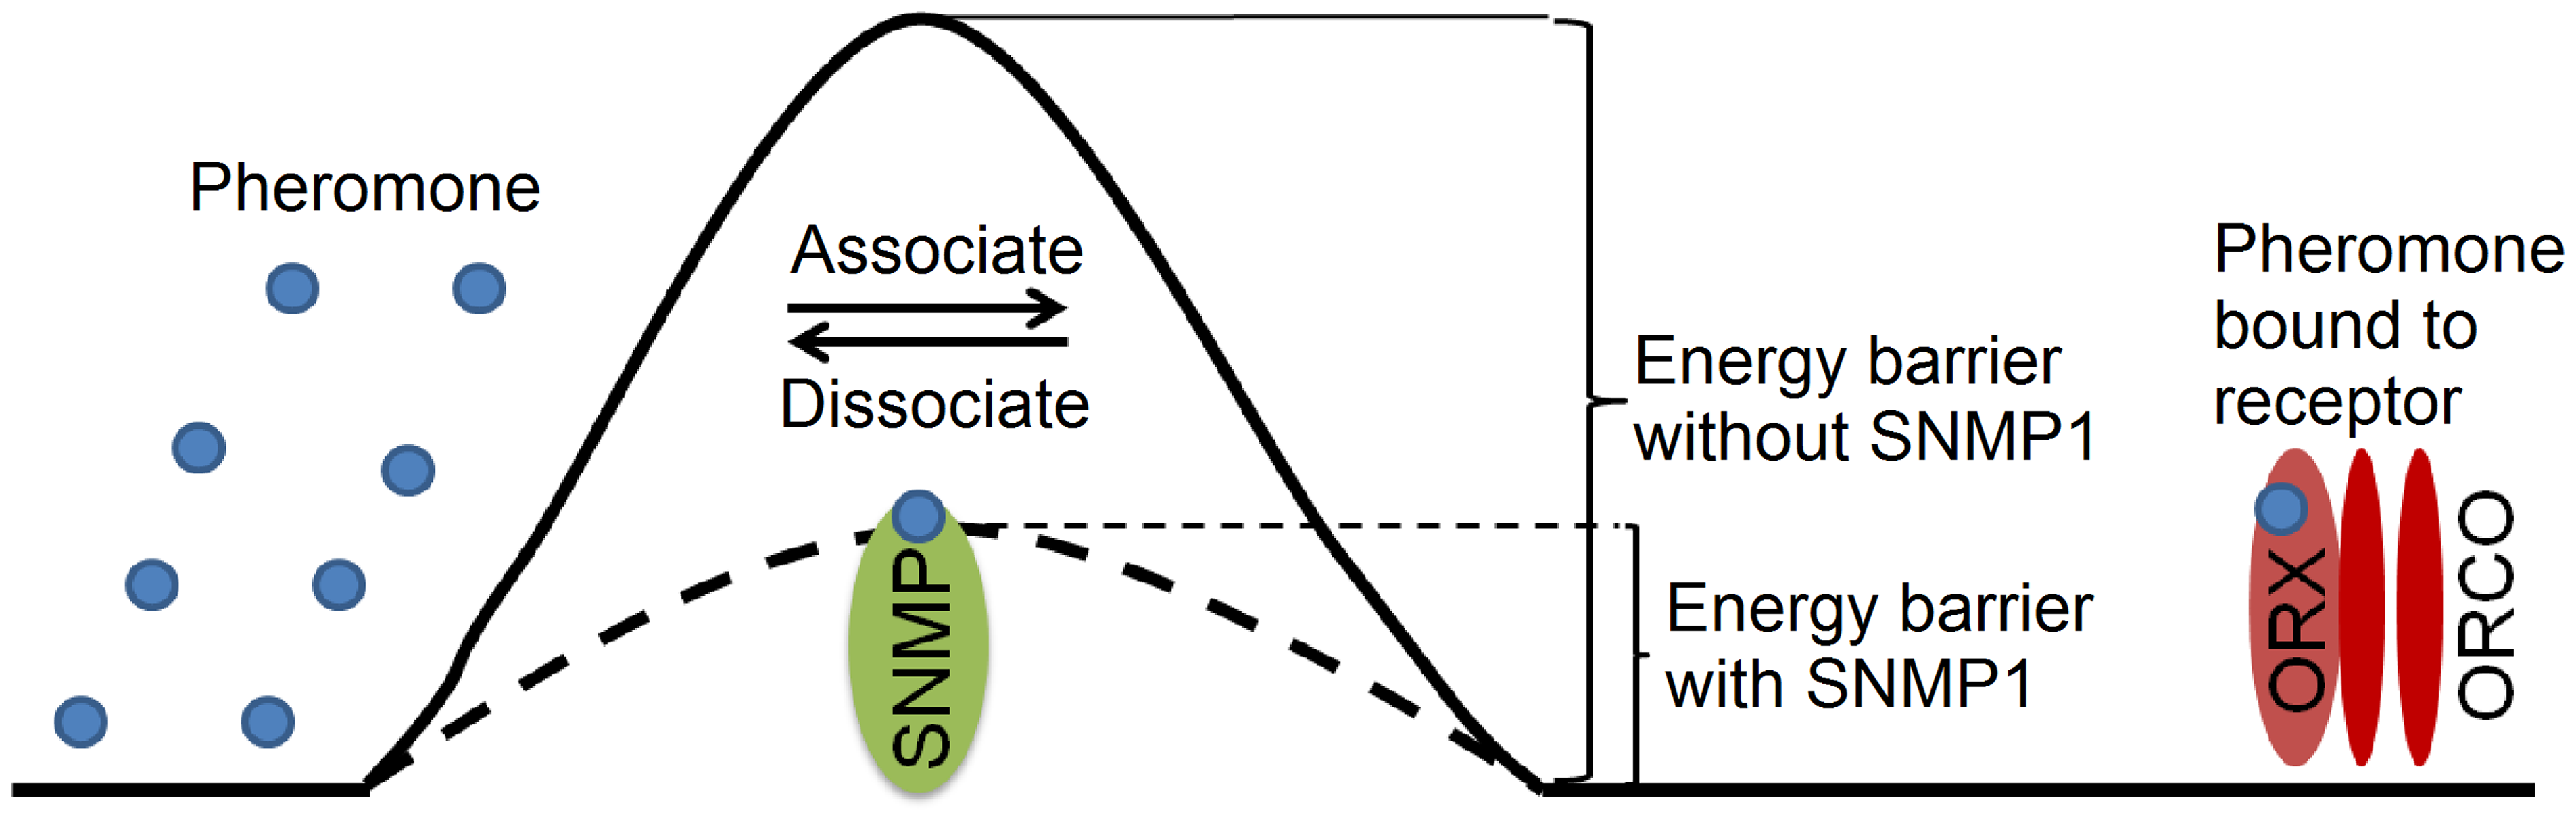 Proposed model for SNMP1 function in pheromone sensation.